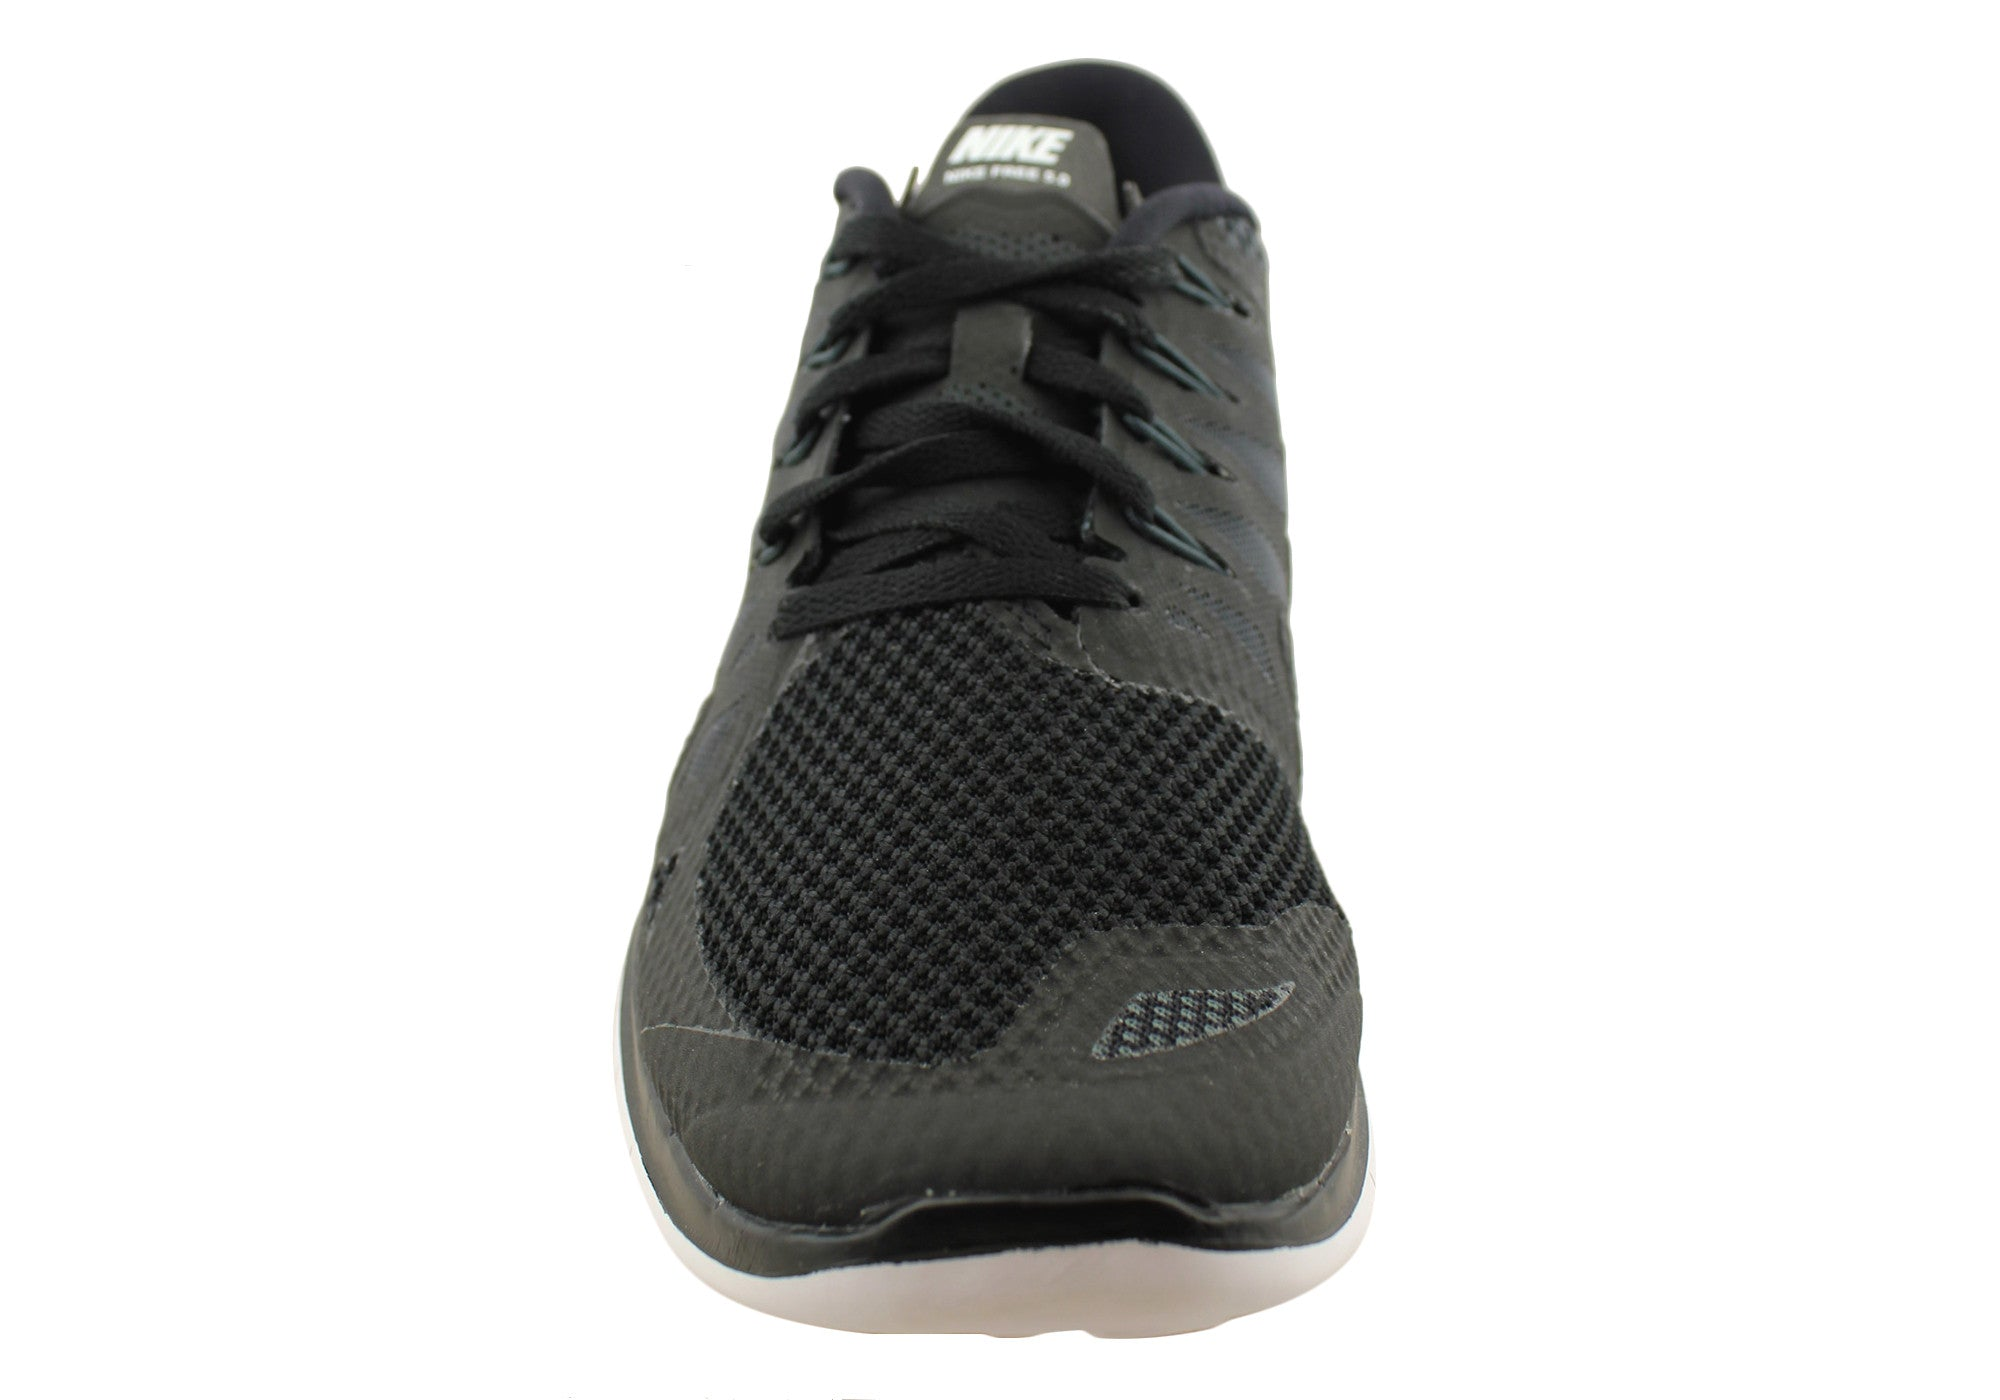 Nike Free 5.0 Mens Barefoot Running Shoes